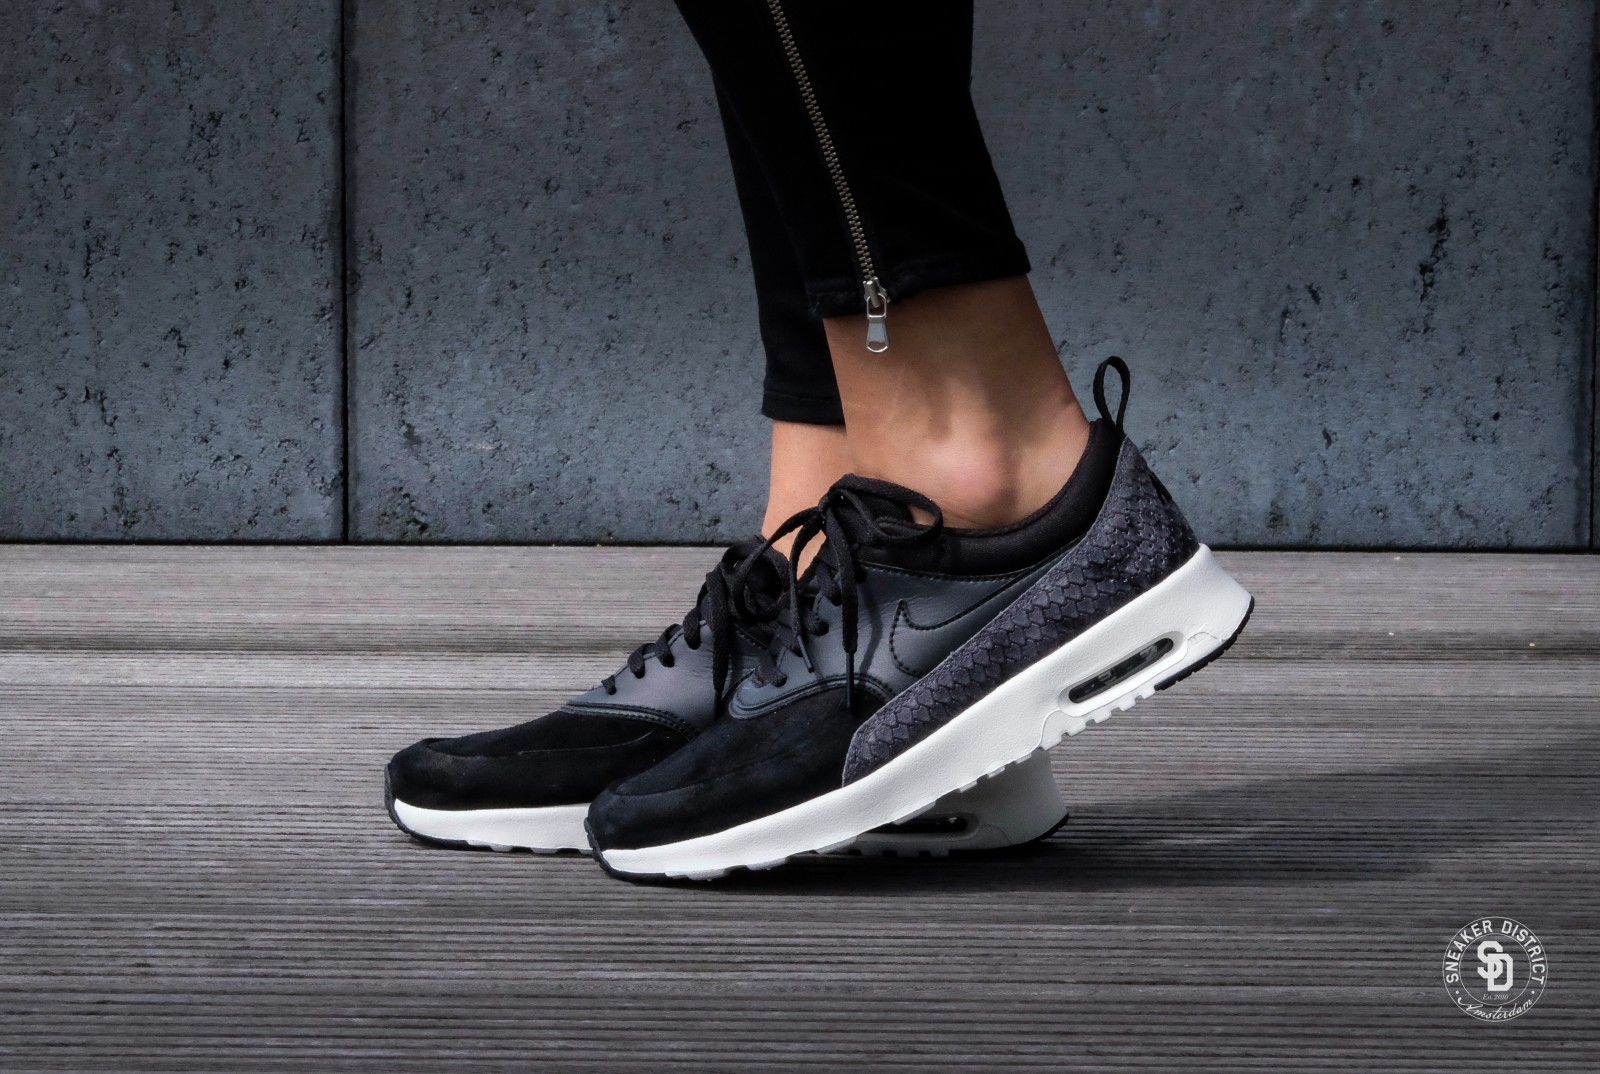 Nike WMNS Air Max Thea PRM BlackSail Dark Grey 616723 019